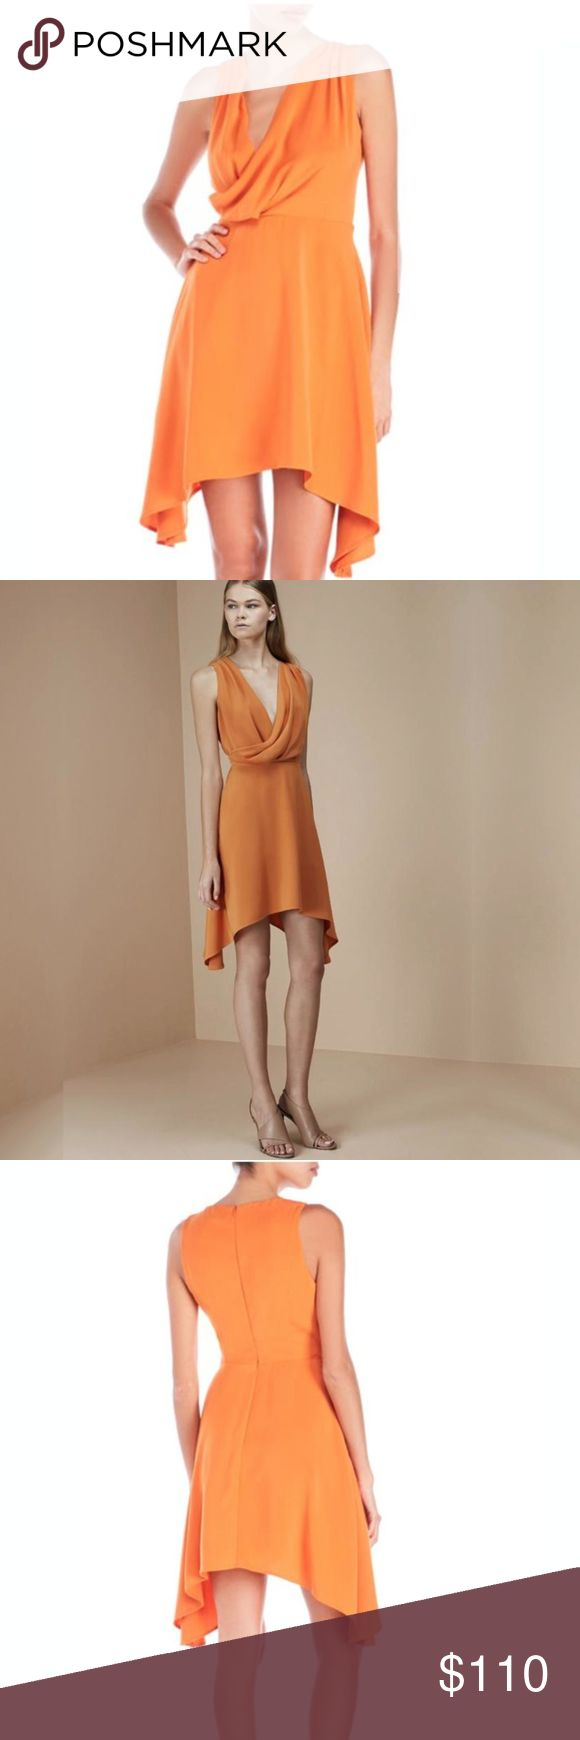 NWT Keepsake the Label Escape Mini Dress Australian brand Keepsake keeps churning out spectacular dresses. This sophisticated cocktail dress in tangerine orange is a size MEDIUM (between size 8-10). Details include a woven construction, draped V-neck, pleating at shoulder, sleeveless, high-low hem and concealed back zip closure. 100% Polyester. KEEPSAKE the Label Dresses